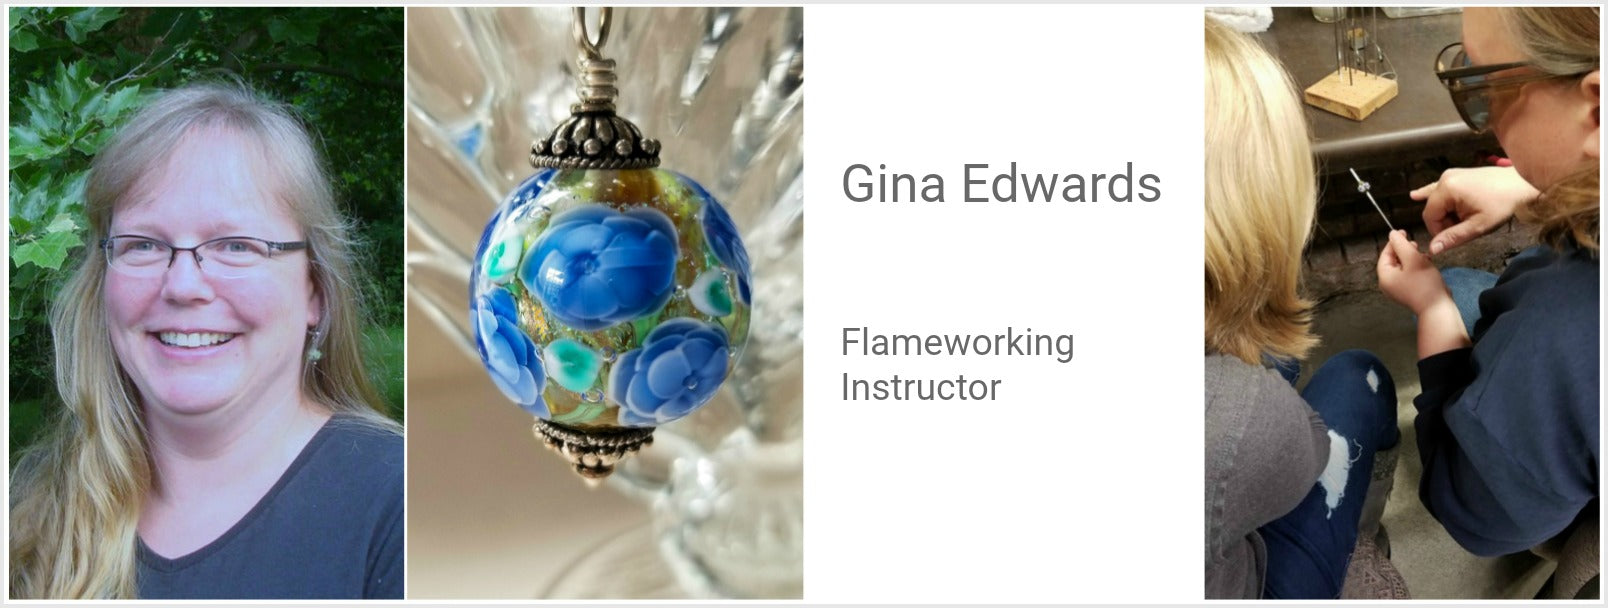 Gina Edwards, Flameworking Instructor